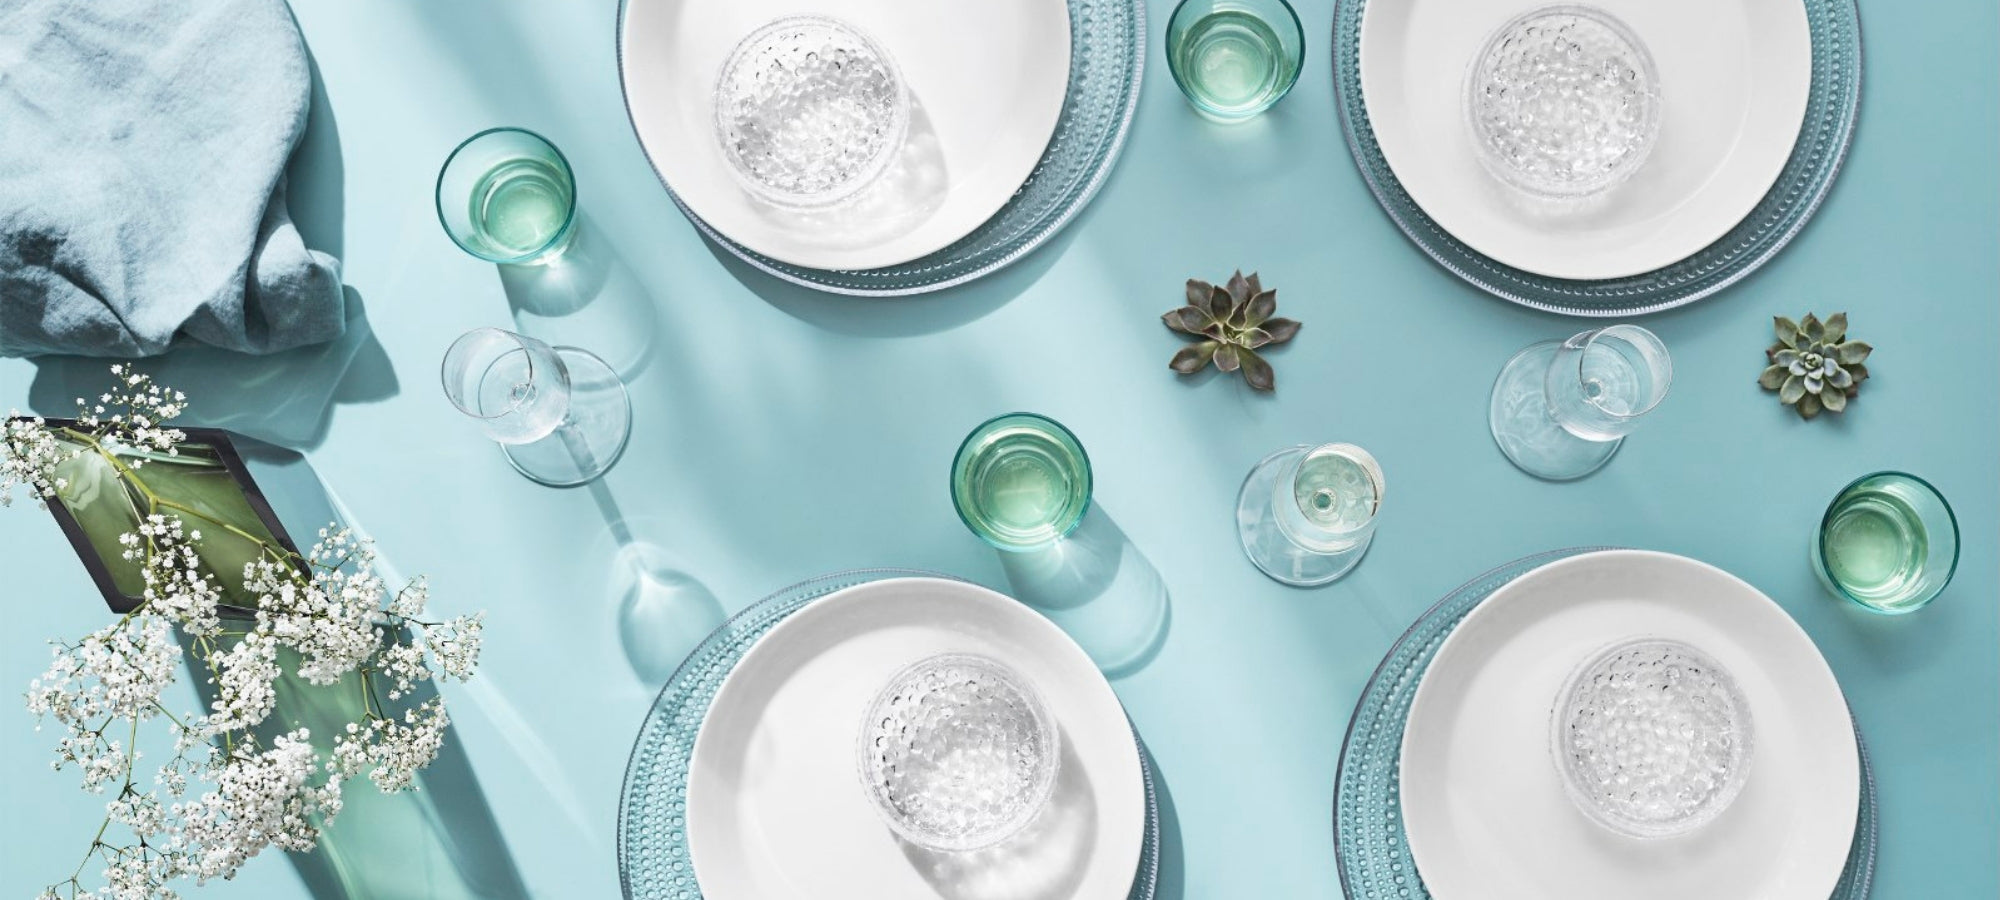 iittala engagement wedding gift ideas